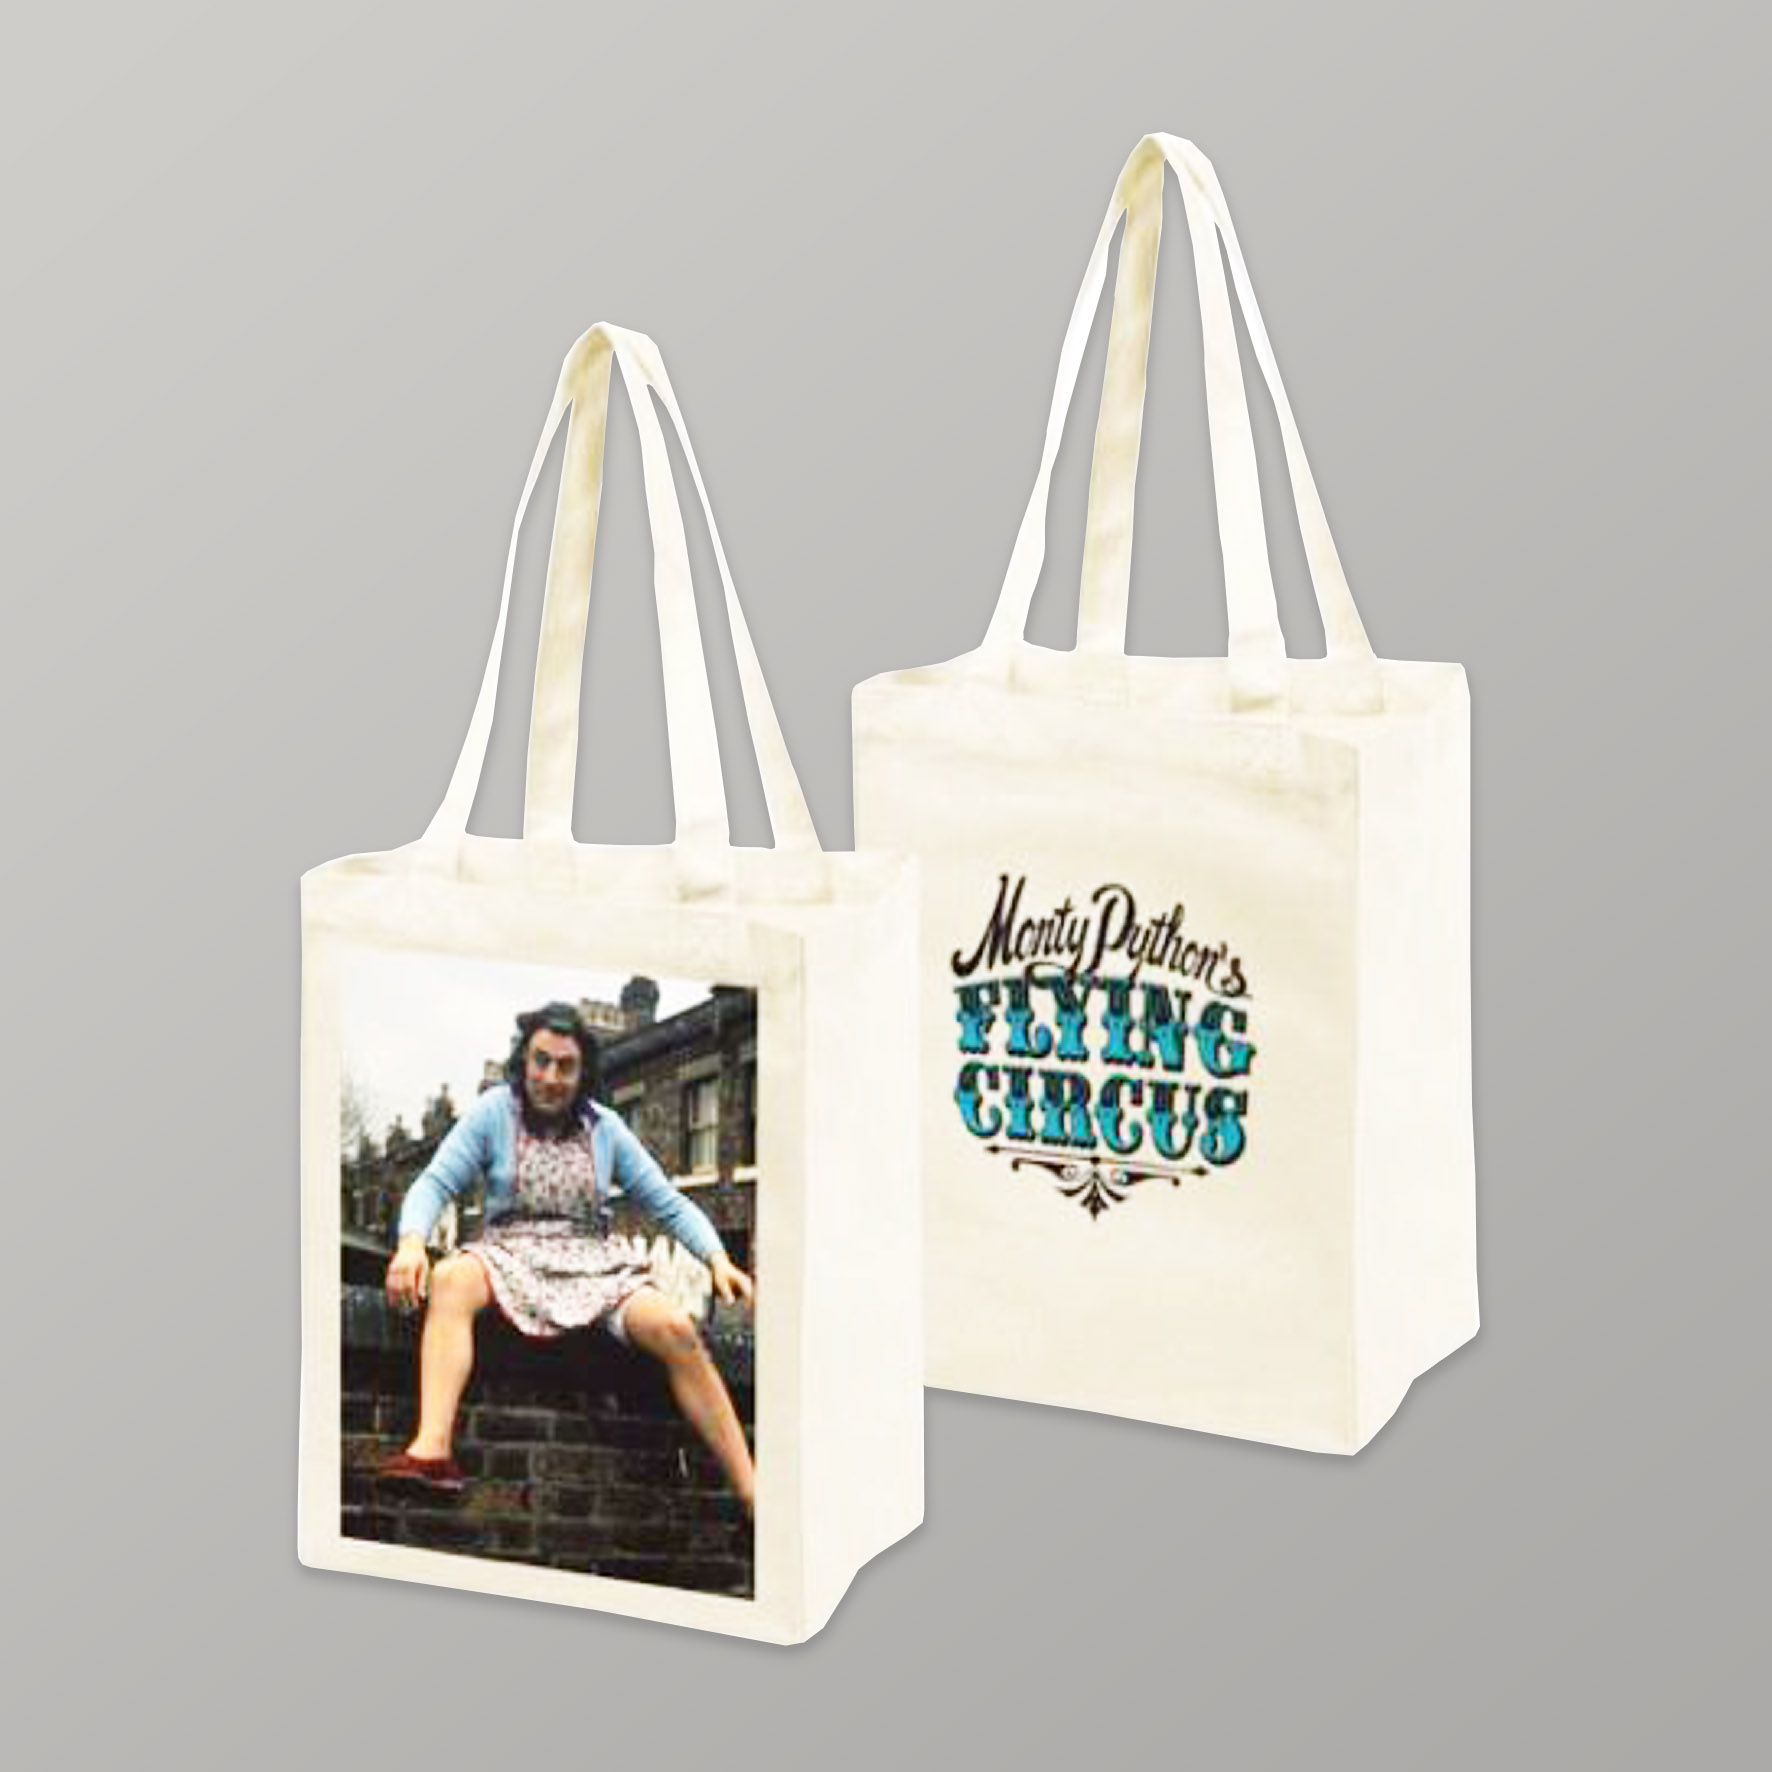 Buy Monty Python Tote Bag (Terry Jones)